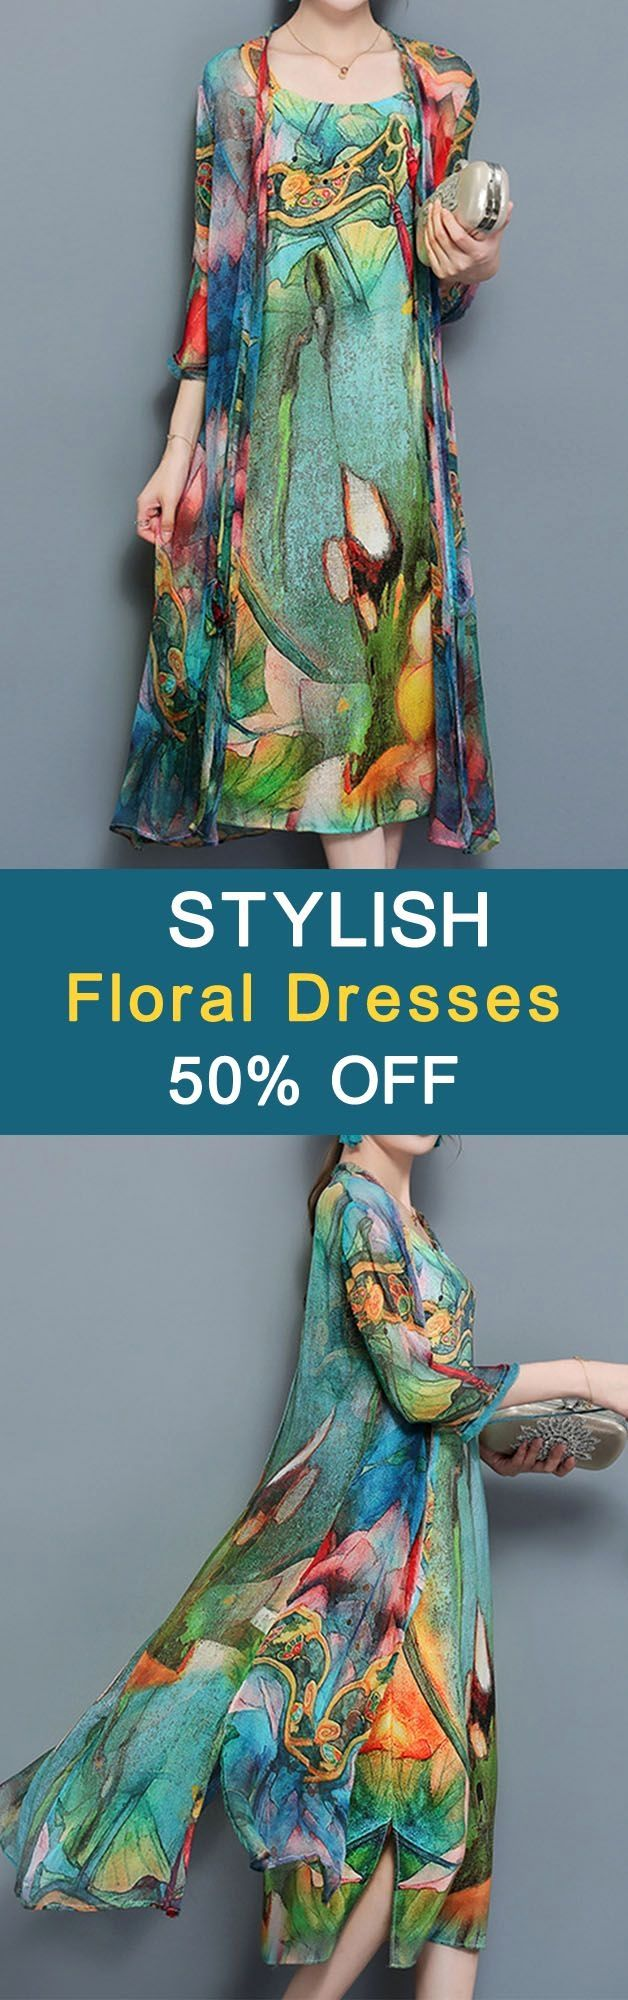 best tops images on pinterest woman fashion casual wear and